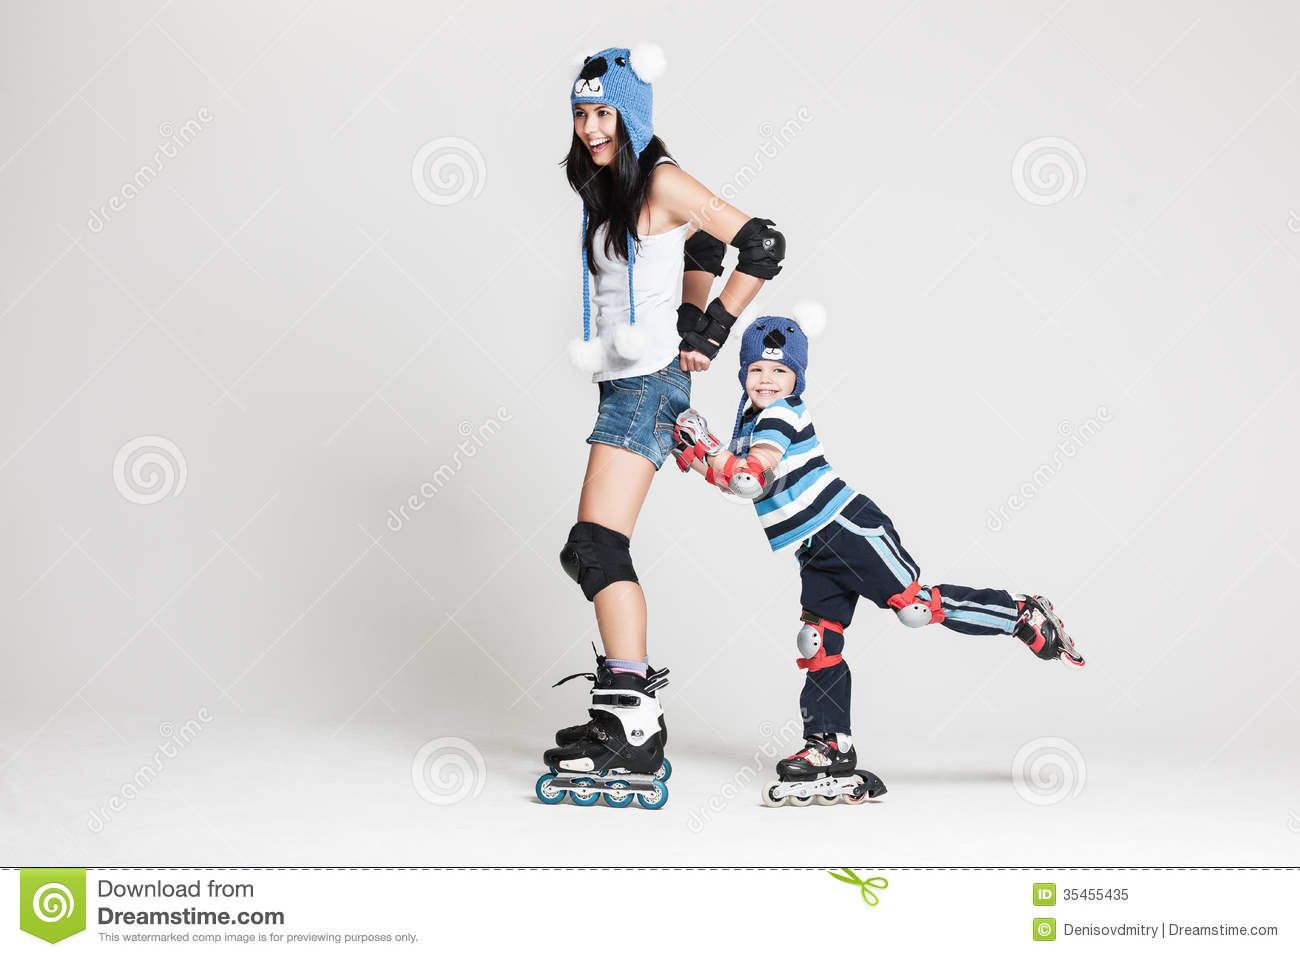 Roller skates for free - Mother And Son In Roller Skates Royalty Free Stock Photo